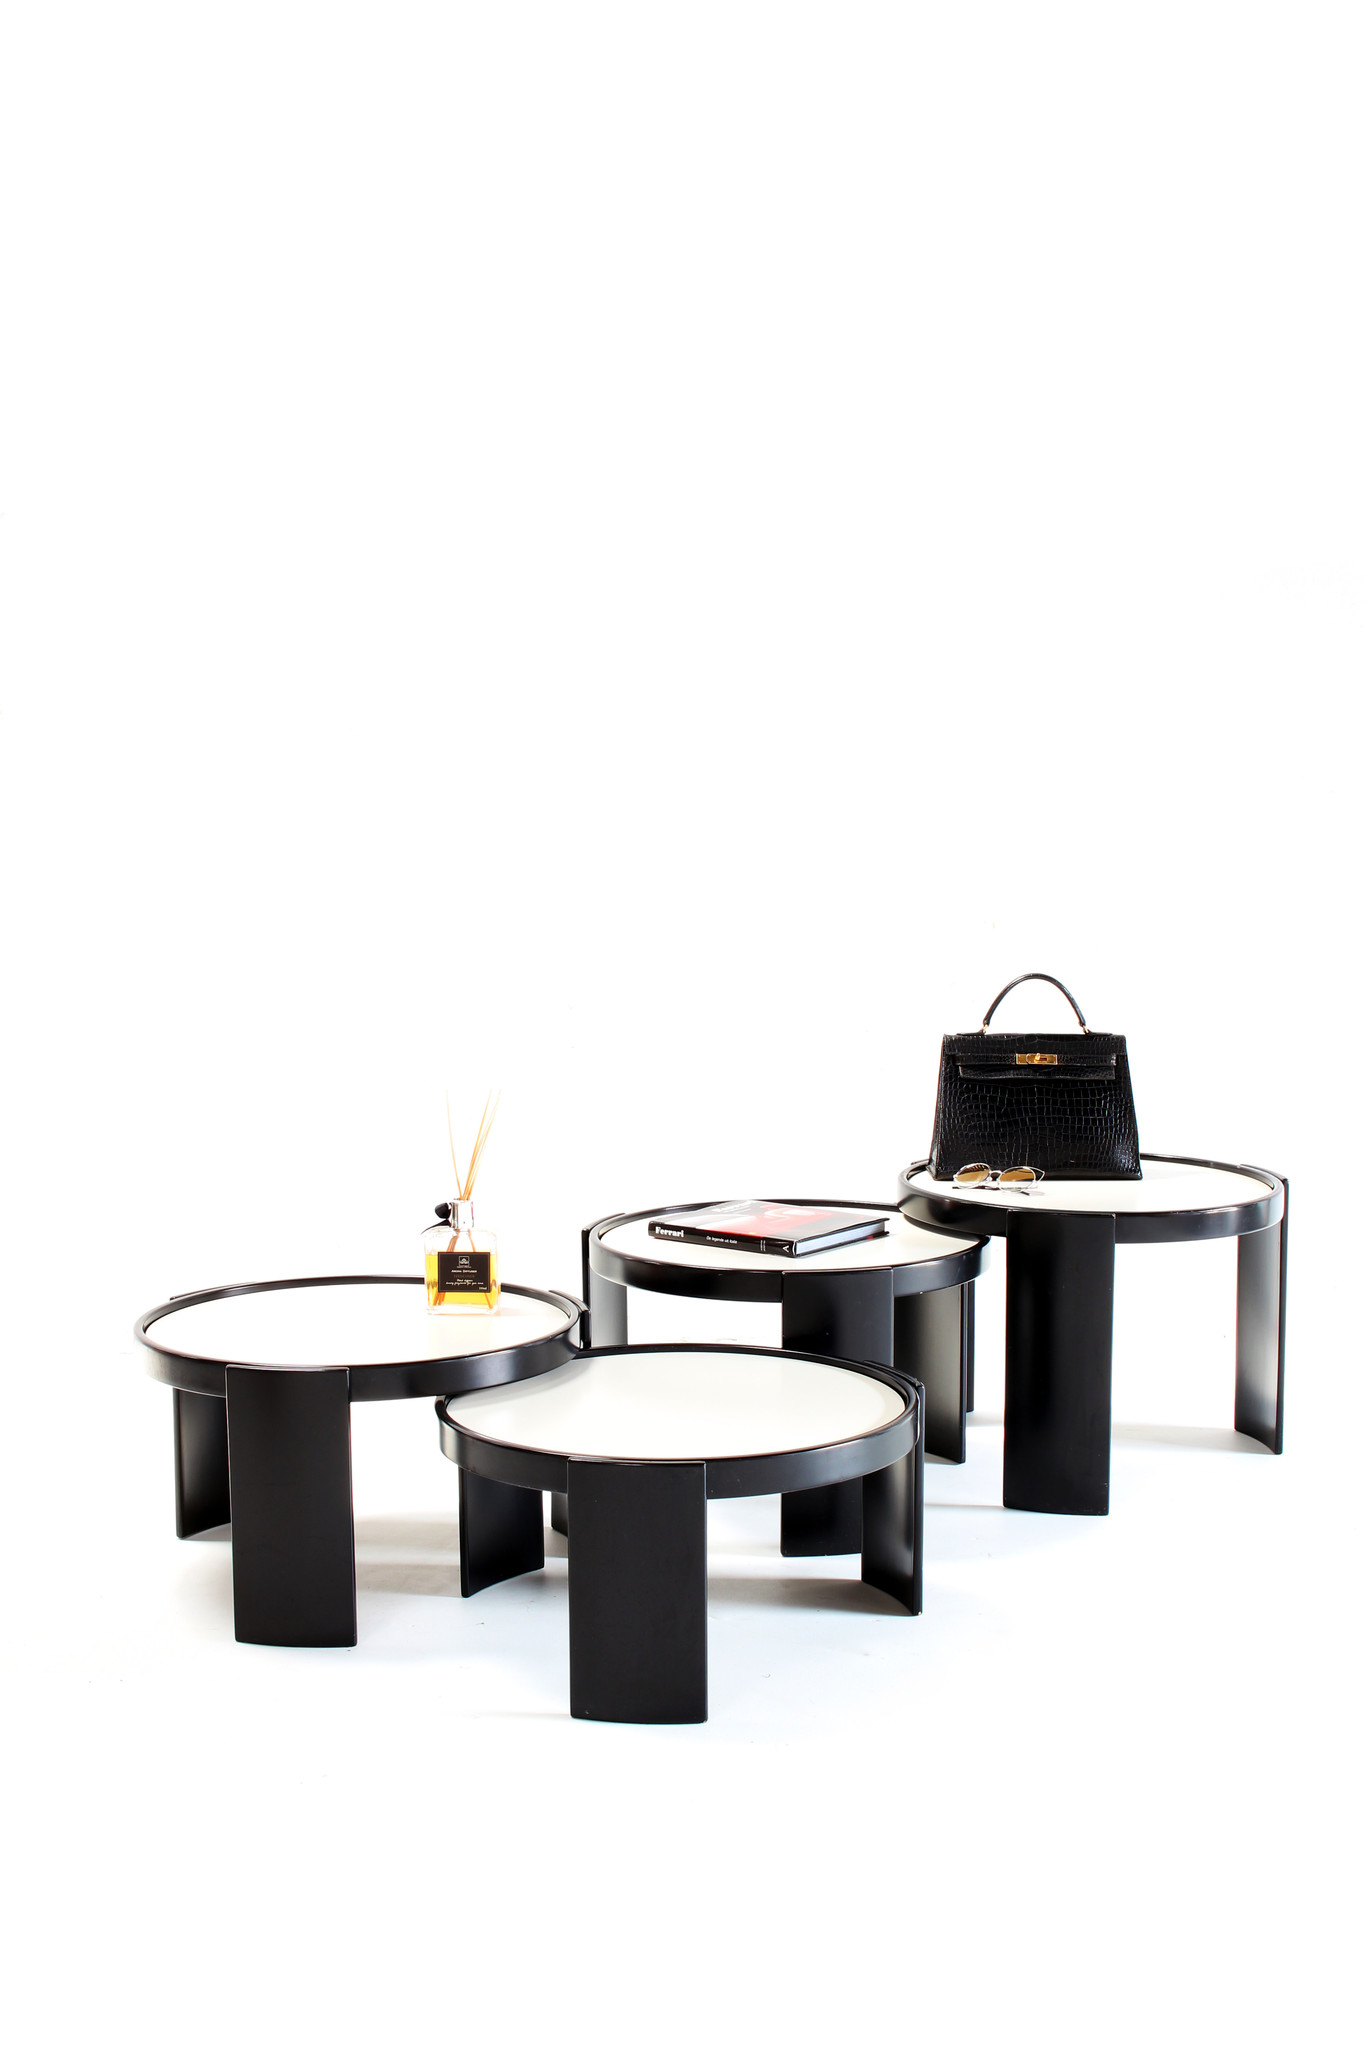 Gianfranco Frattini Low table set for Cassina, 1966